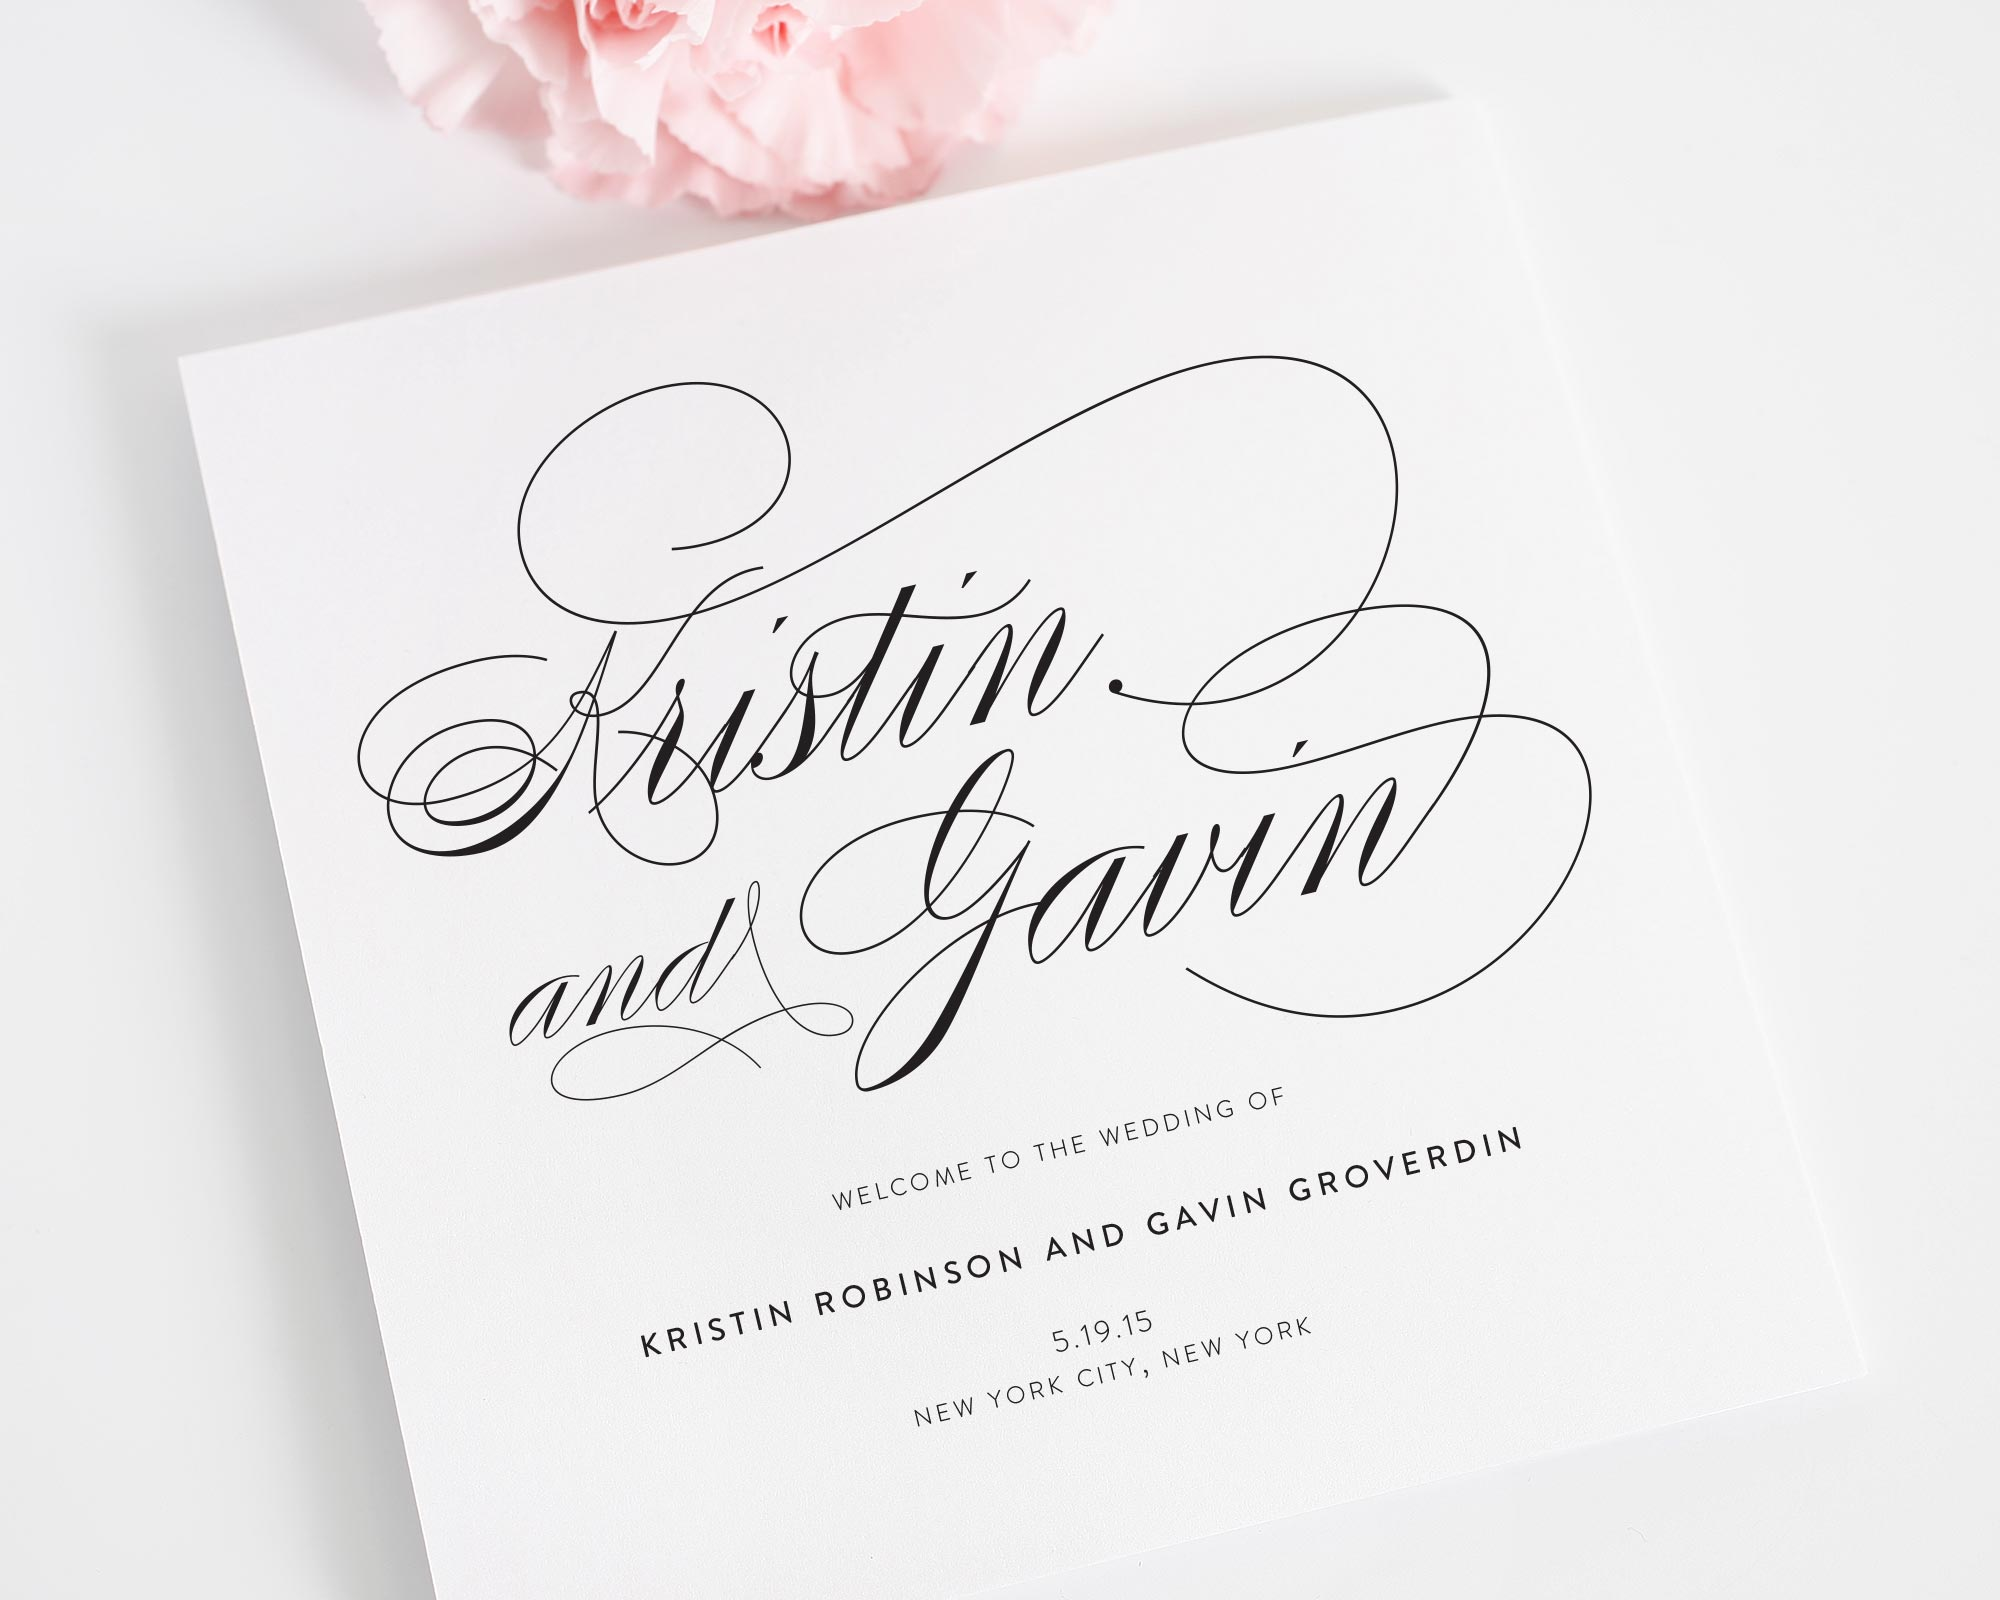 Script Elegance Wedding Program